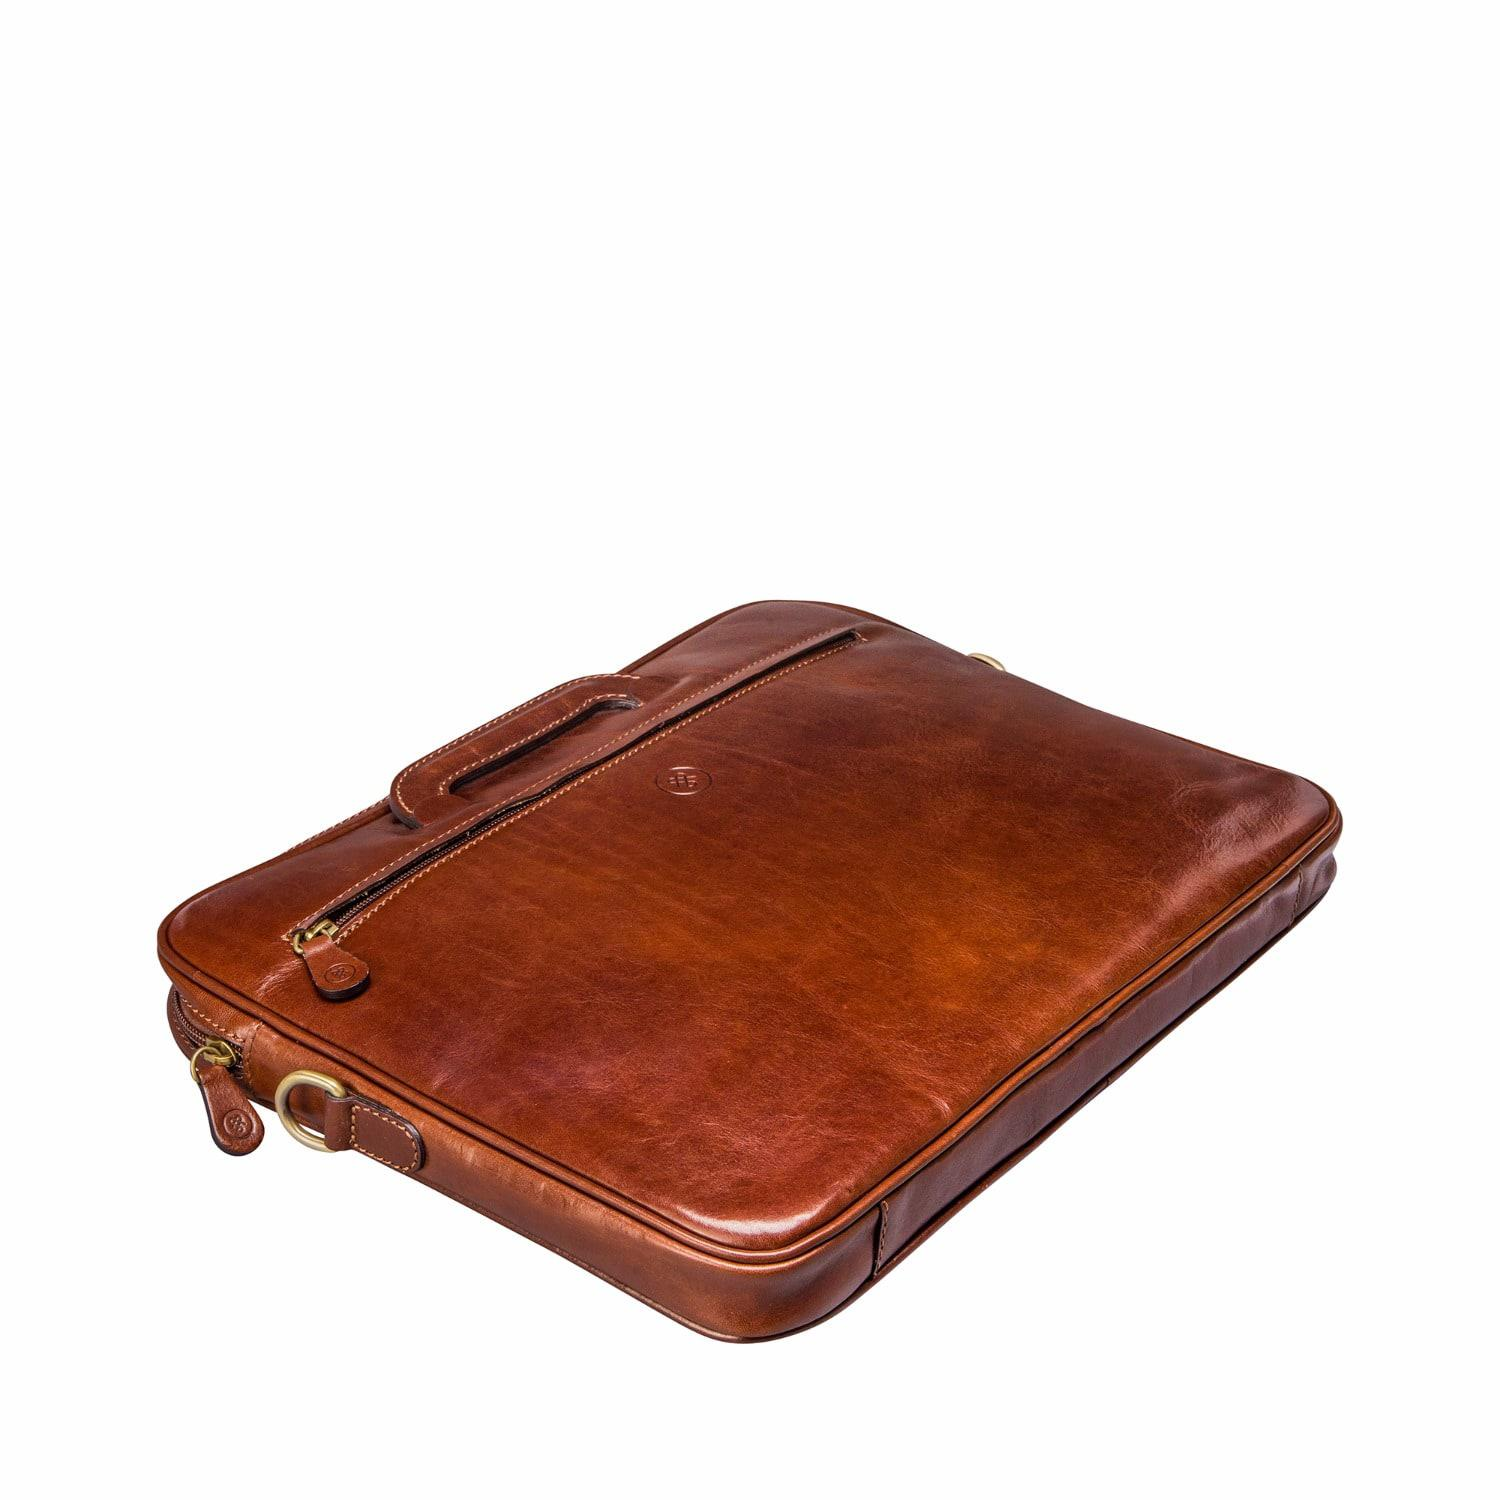 lyst maxwell scott bags the tutti fine leather document case chestnut tan in brown for men. Black Bedroom Furniture Sets. Home Design Ideas